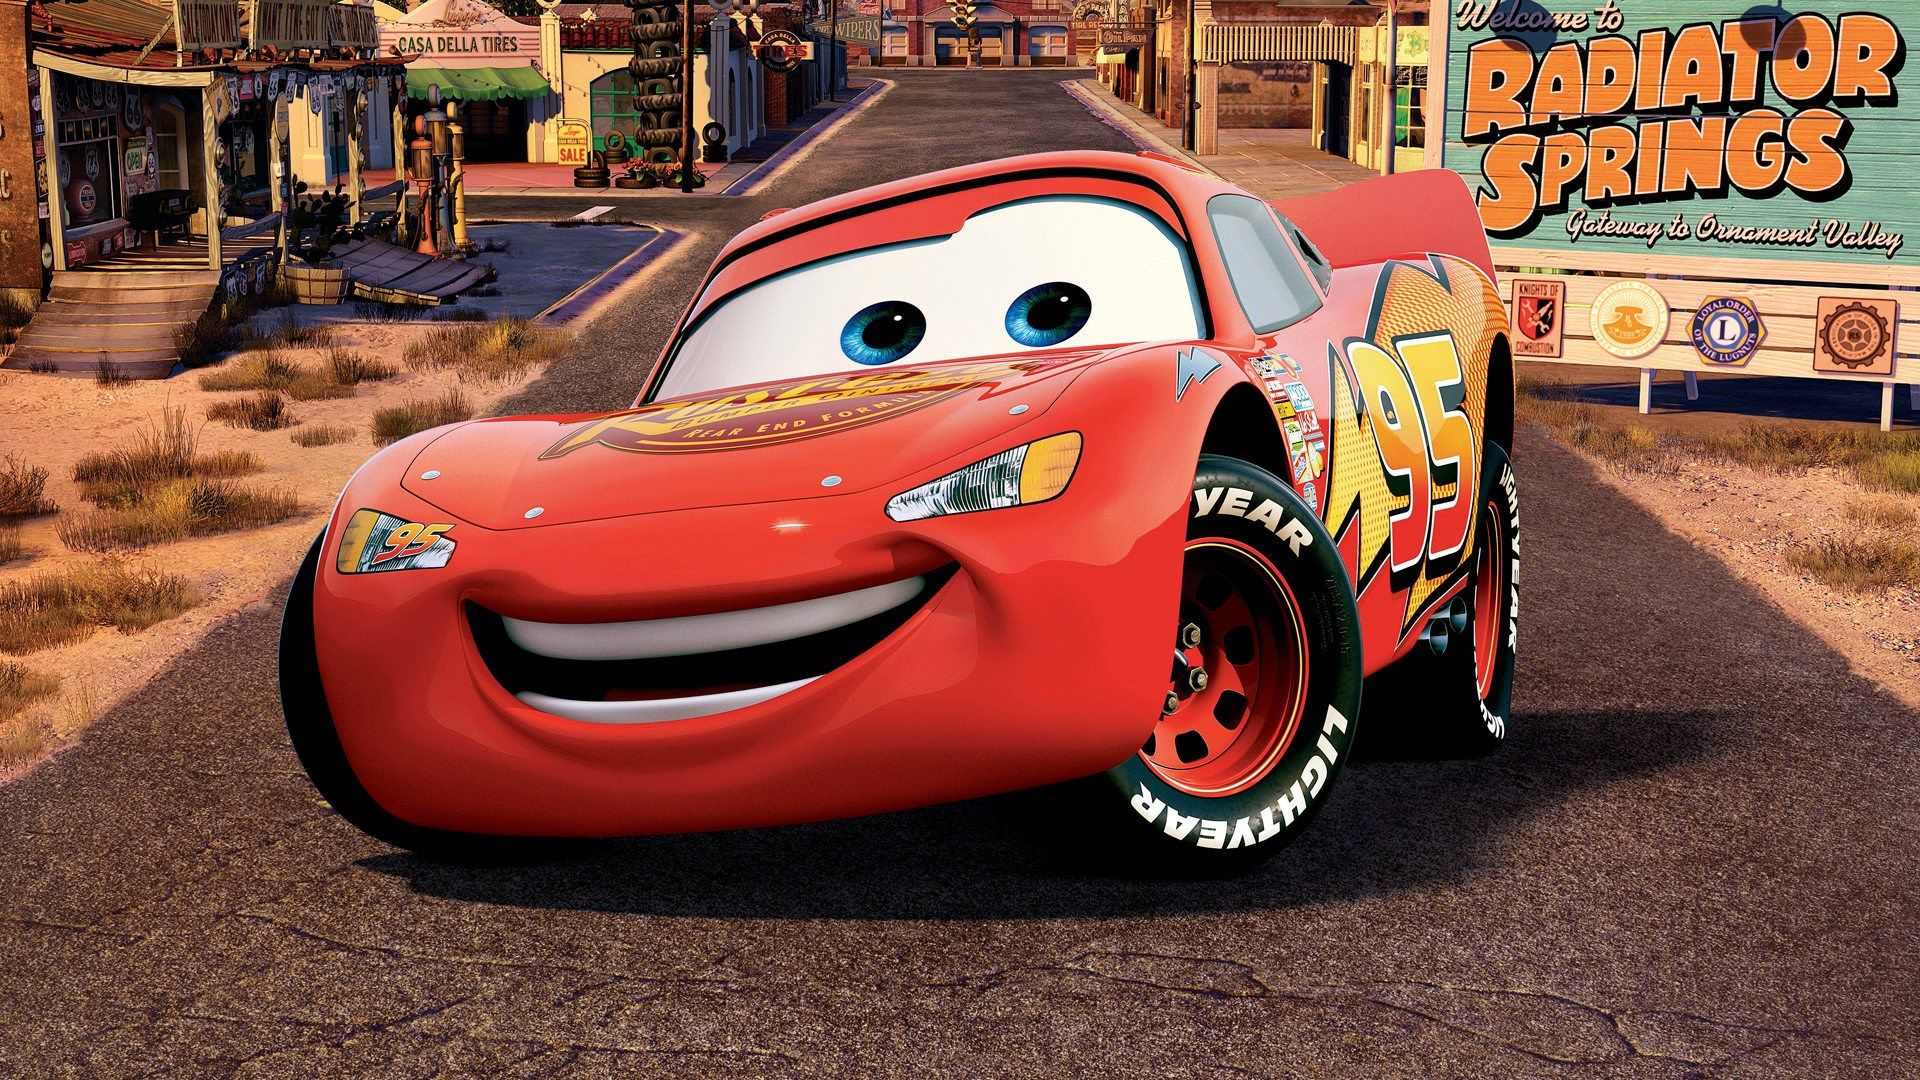 1920x1080 Desktop Background Cars Disney Cars Wallpaper Cars Movie Lightning Mcqueen